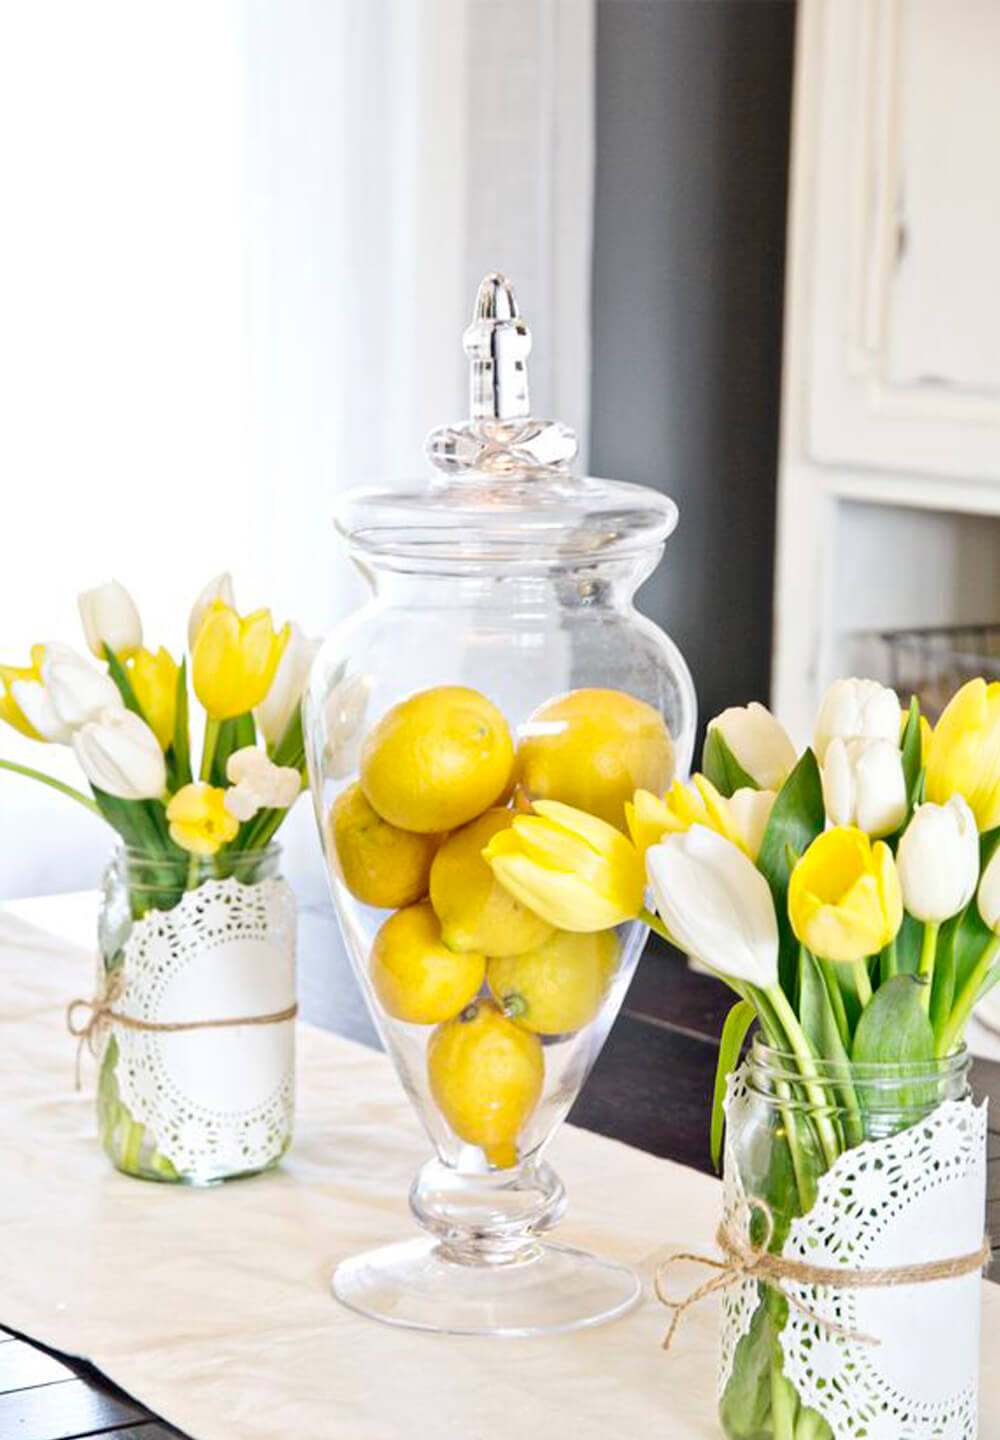 Here Comes The Sun: Lemon & Yellow DIY Easter Centerpiece Décor